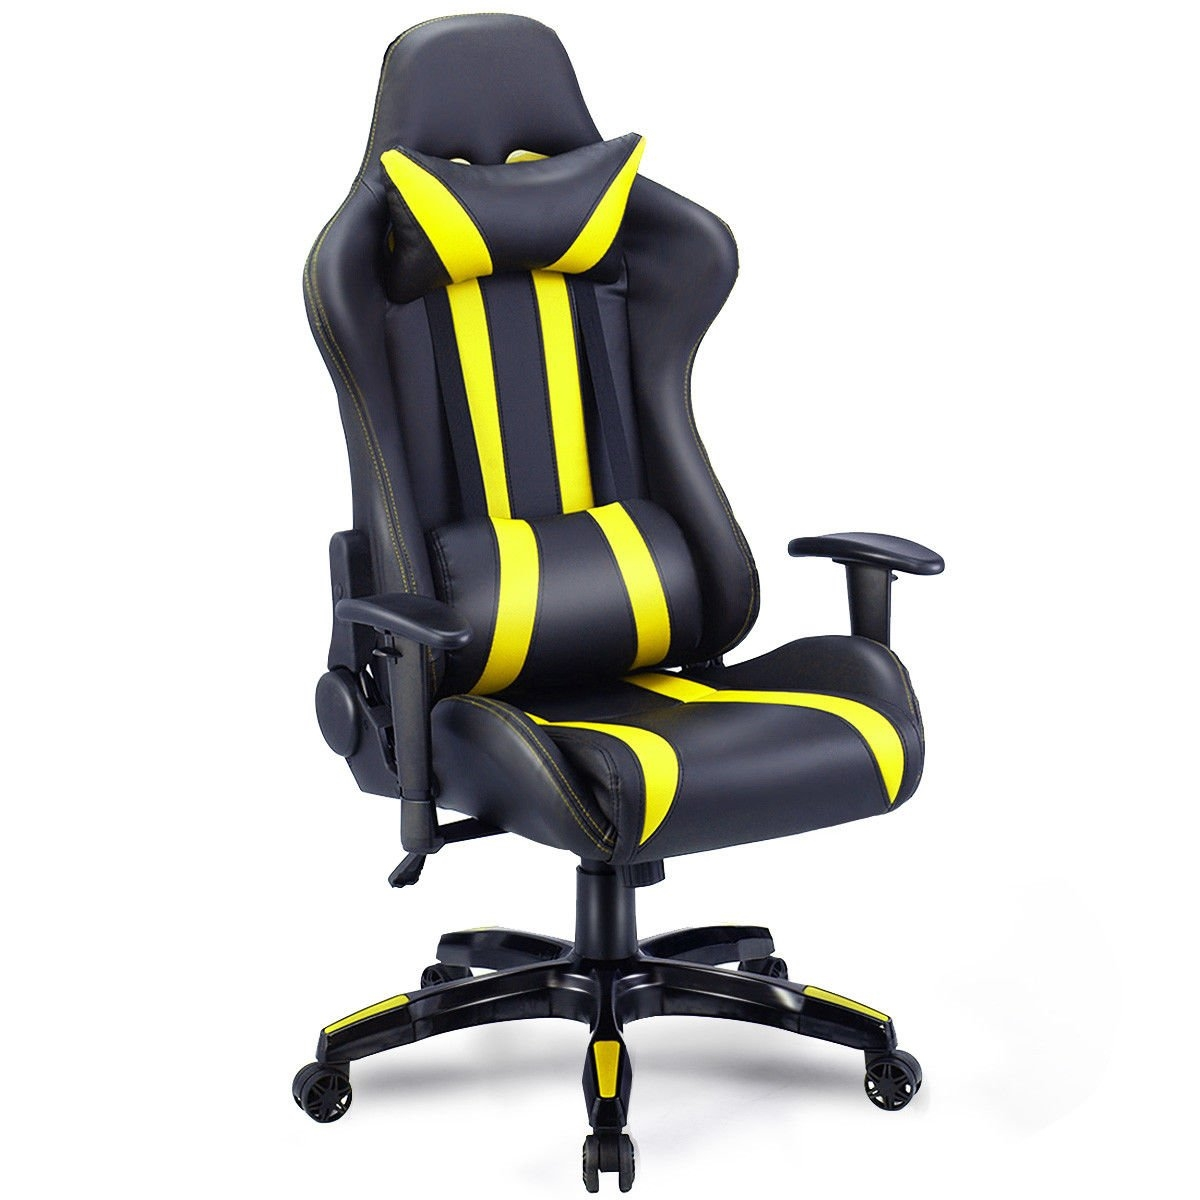 Racing Seat Office Chair Executive High Back Racing Style Gaming Chair